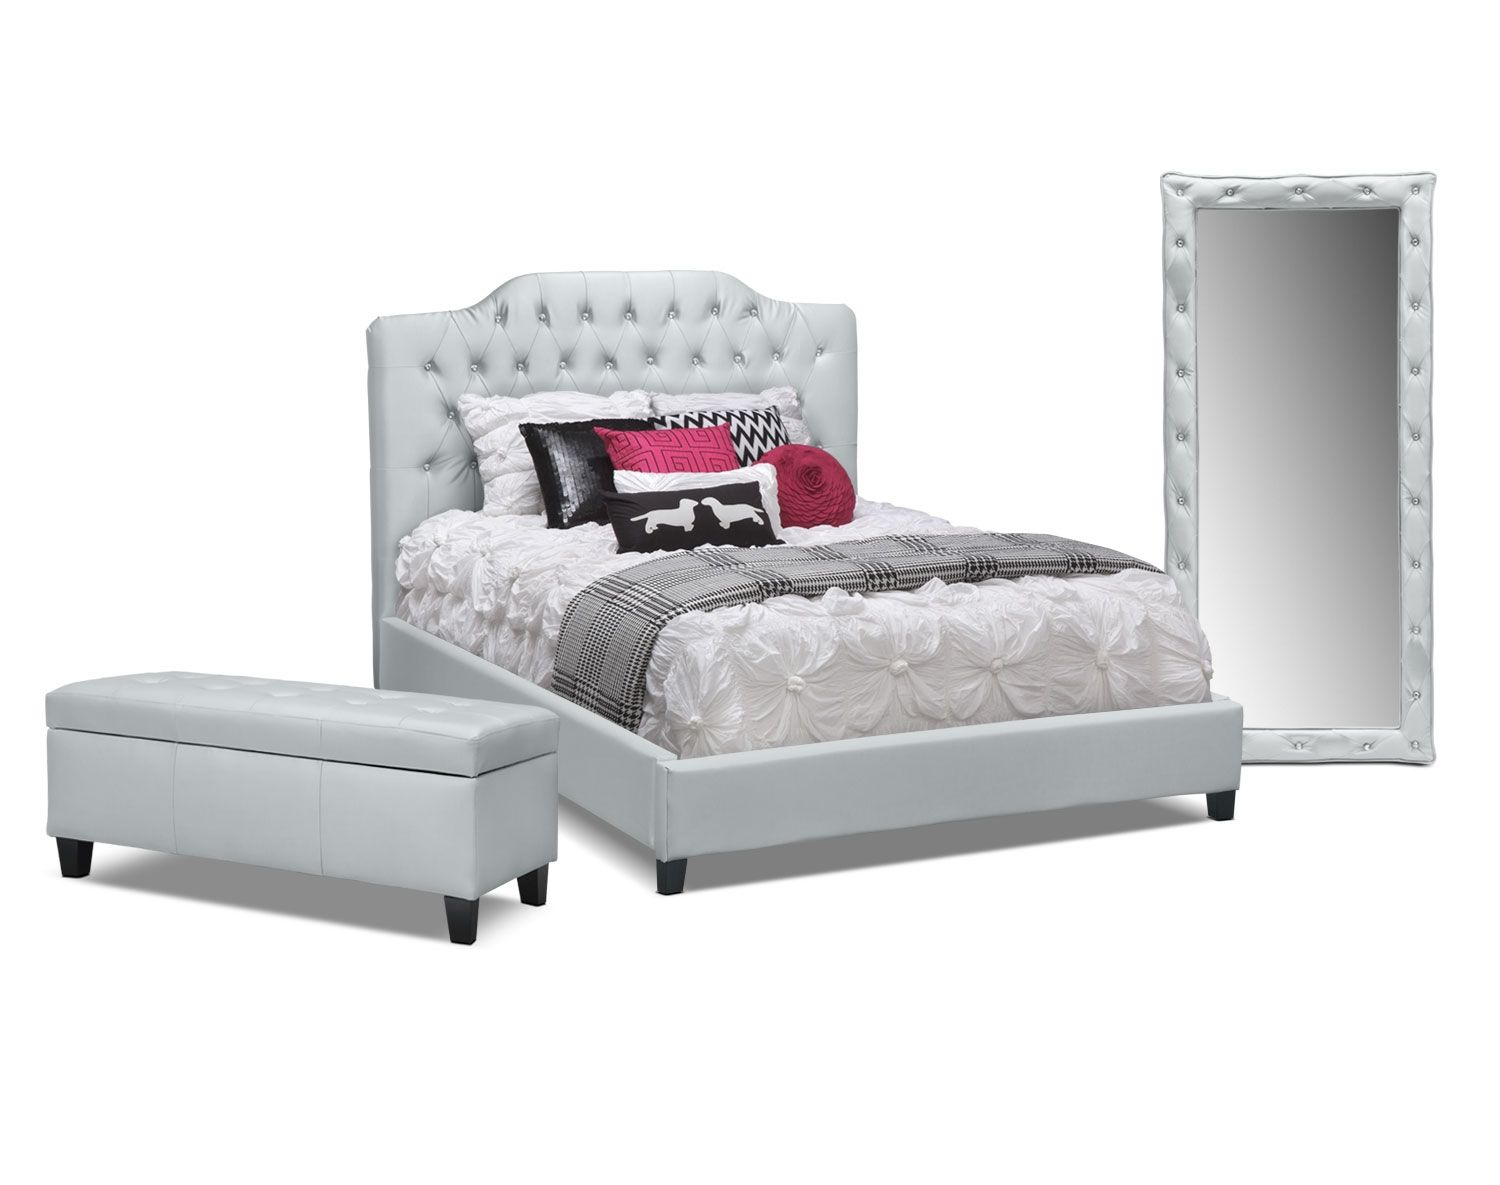 The Valerie Silver Bedroom Collection | Value City Furniture